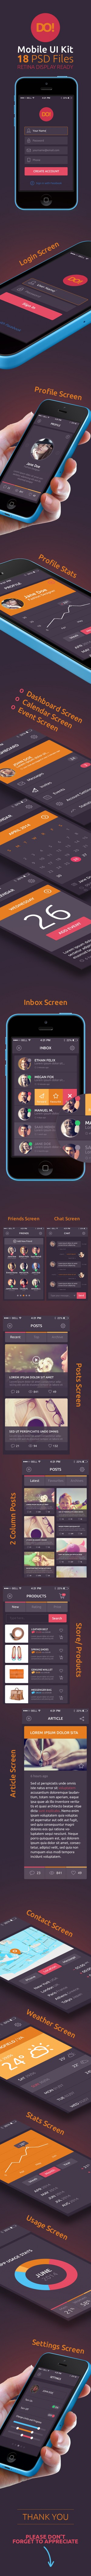 DO! Mobile App UI Kit interface is 19 PSD high resolution, retina display ready, fully shape/vec ...